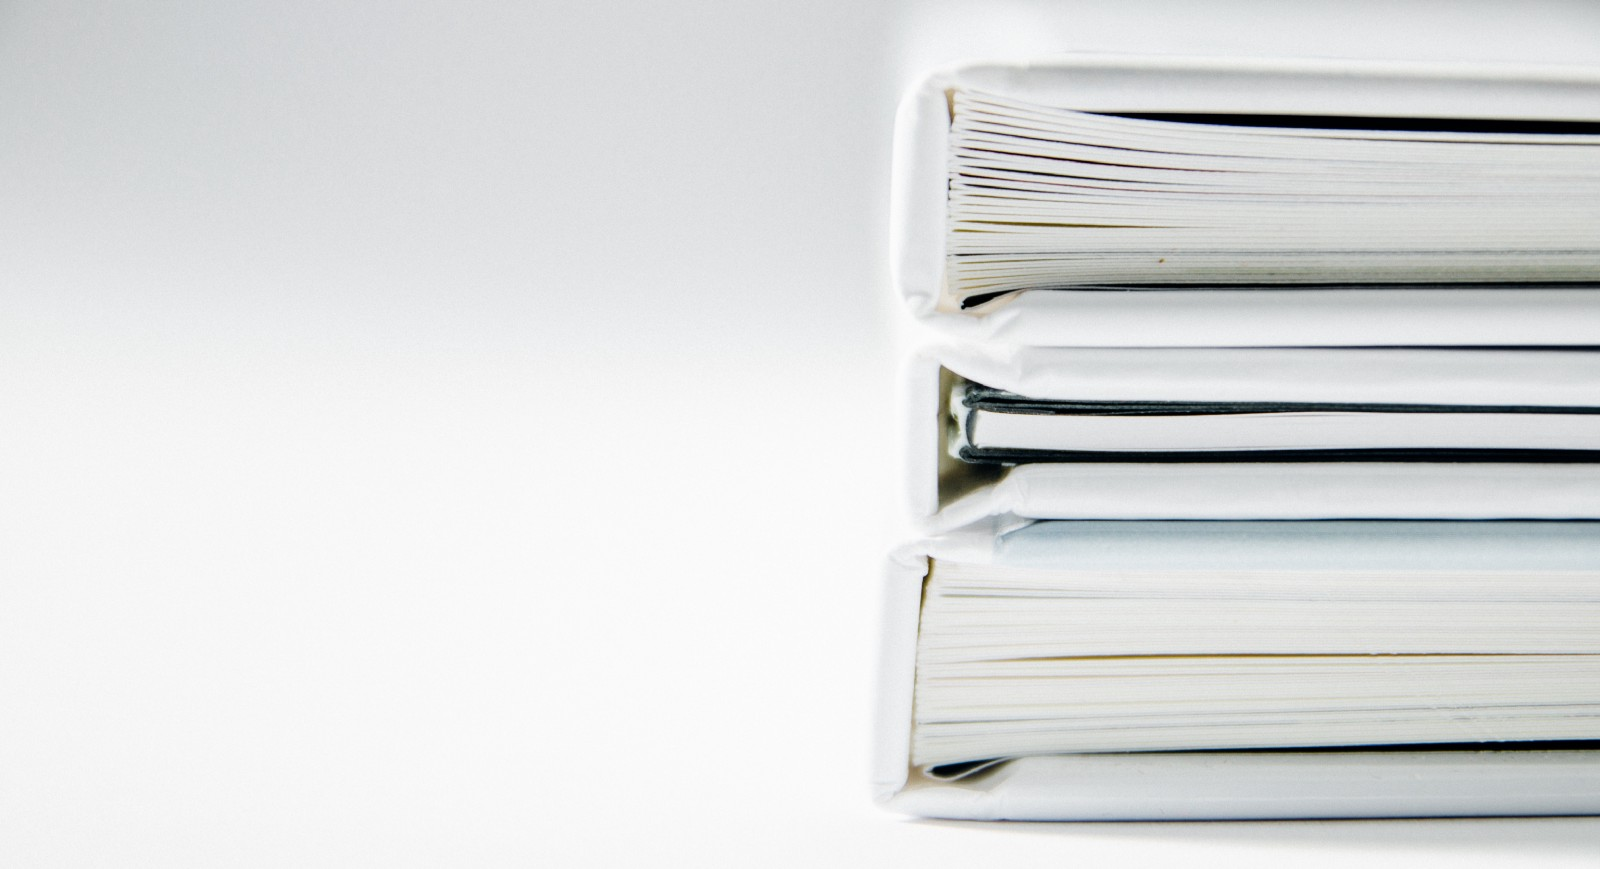 how to write a good white paper Get the inside story on how cmi's framework white paper came together from this origin story, learn 4 keys to compelling content marketing with white papers.